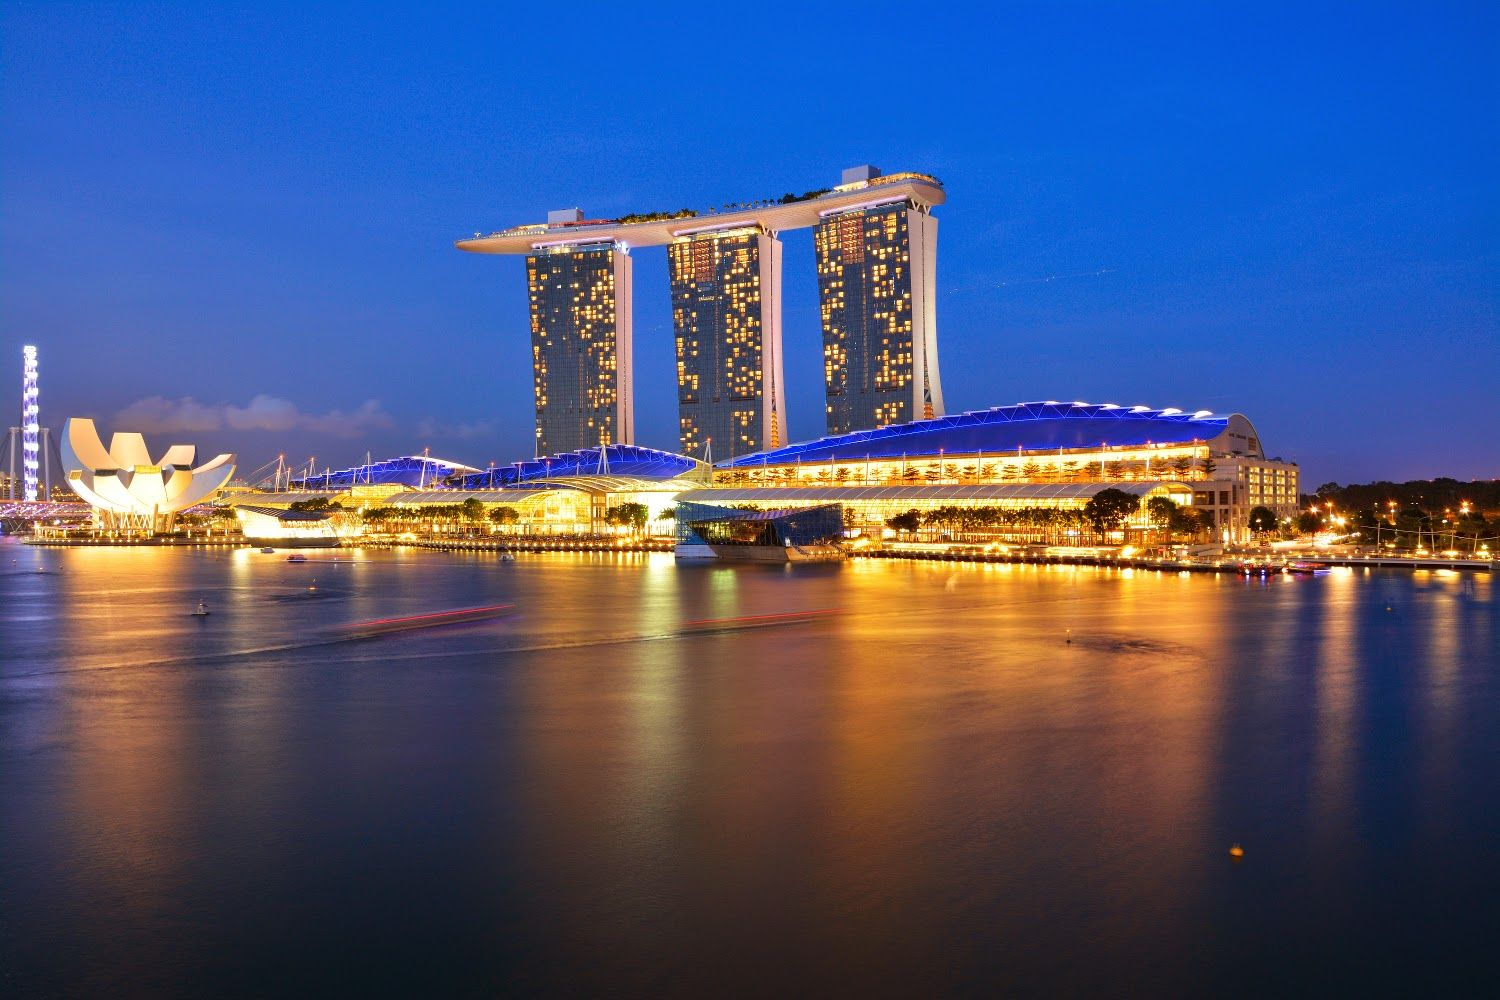 The Kontemporary - Just another Blog: Travel: Fullerton Bay Hotel Singapore